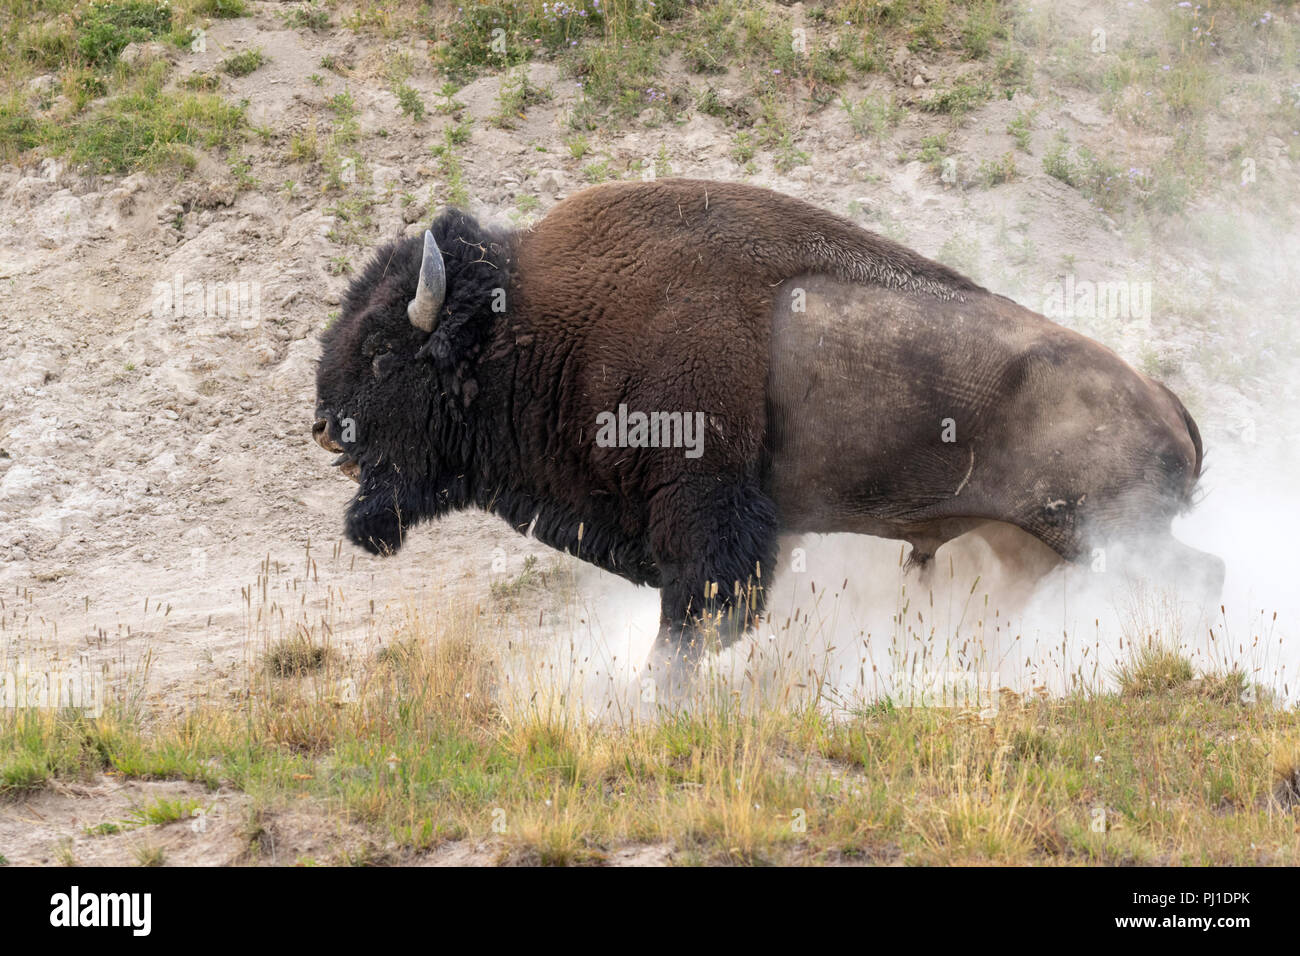 American bison (Bison bison) male bathing in dust, Yellowstone National park, Wyoming, USA - Stock Image